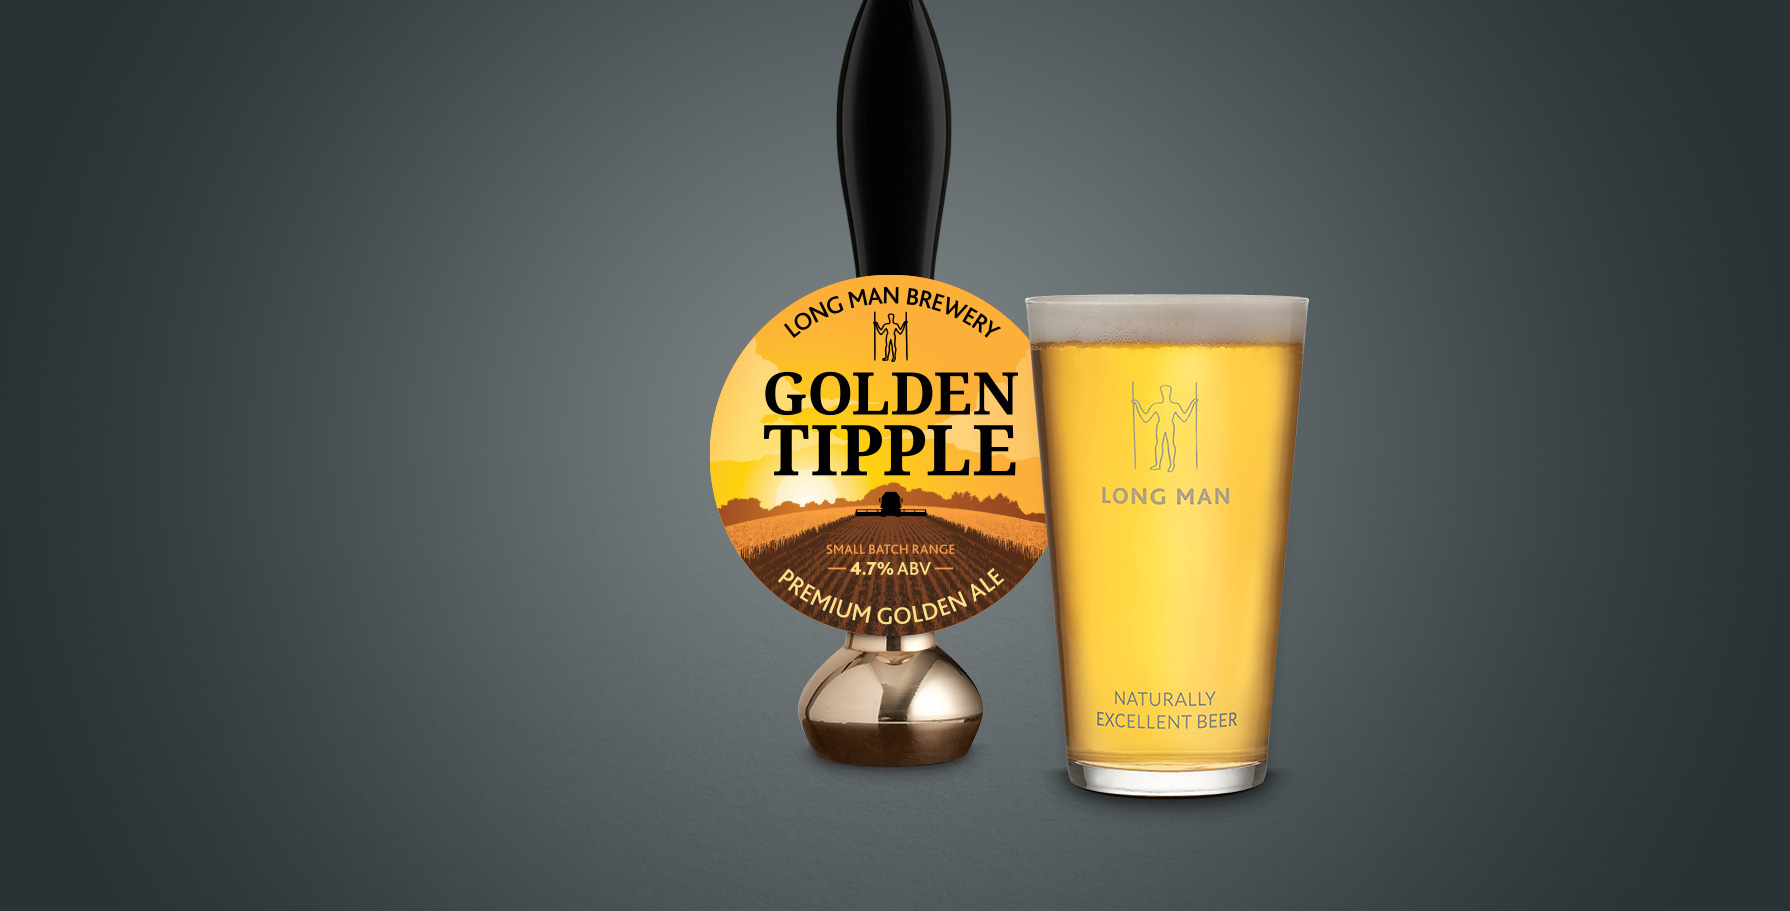 Golden Tipple